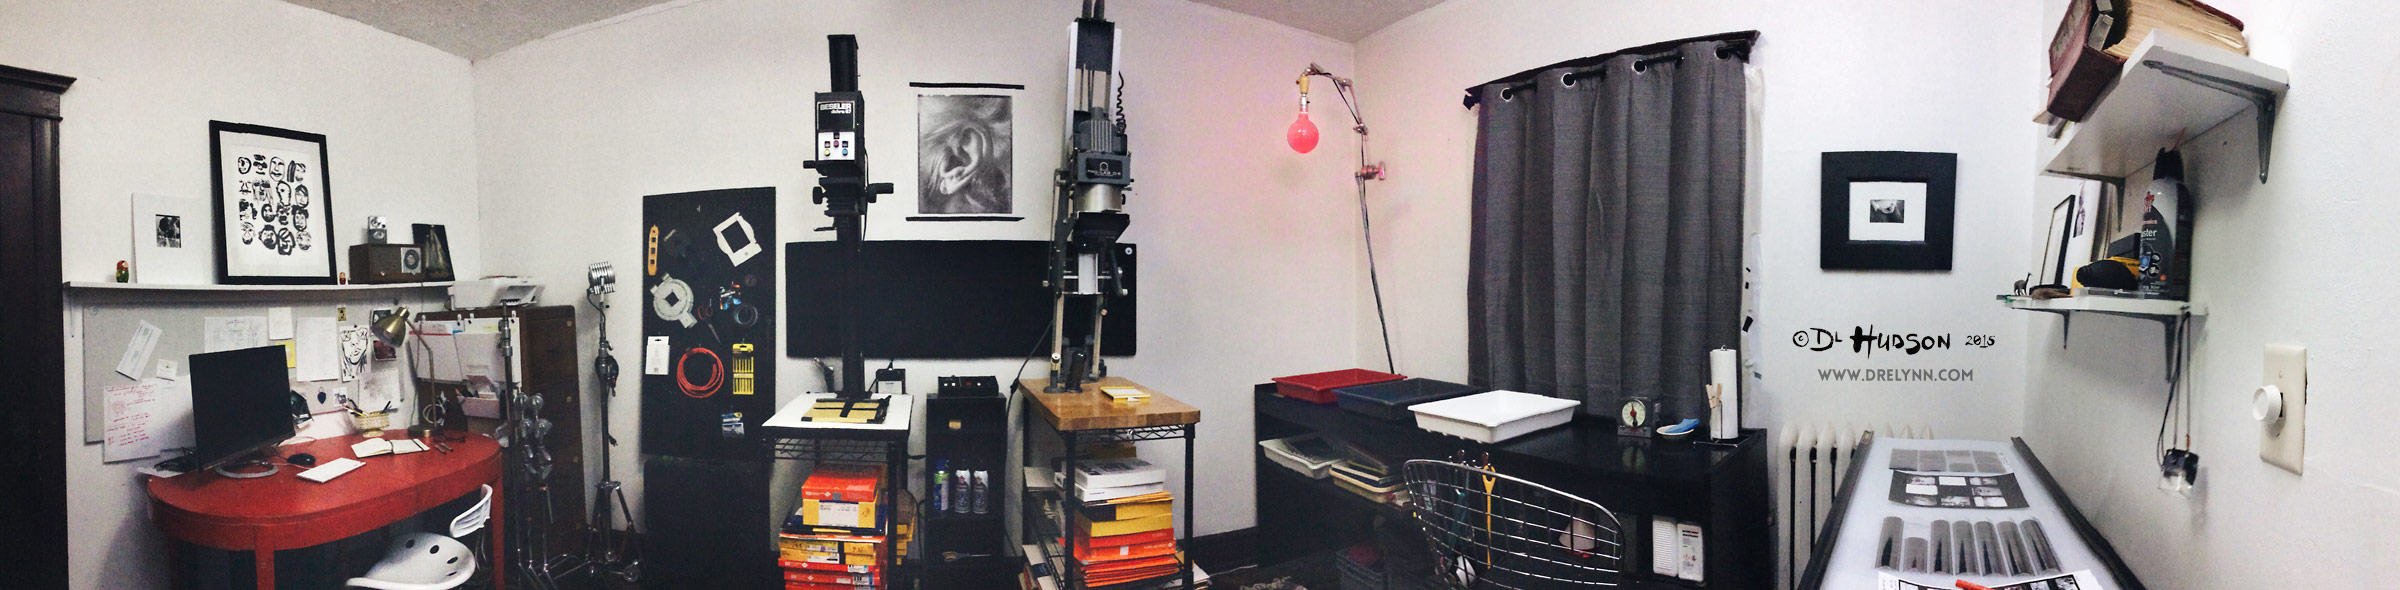 DIY Apartment Darkroom Panorama / ©DL Hudson 2015, All Rights Reserved